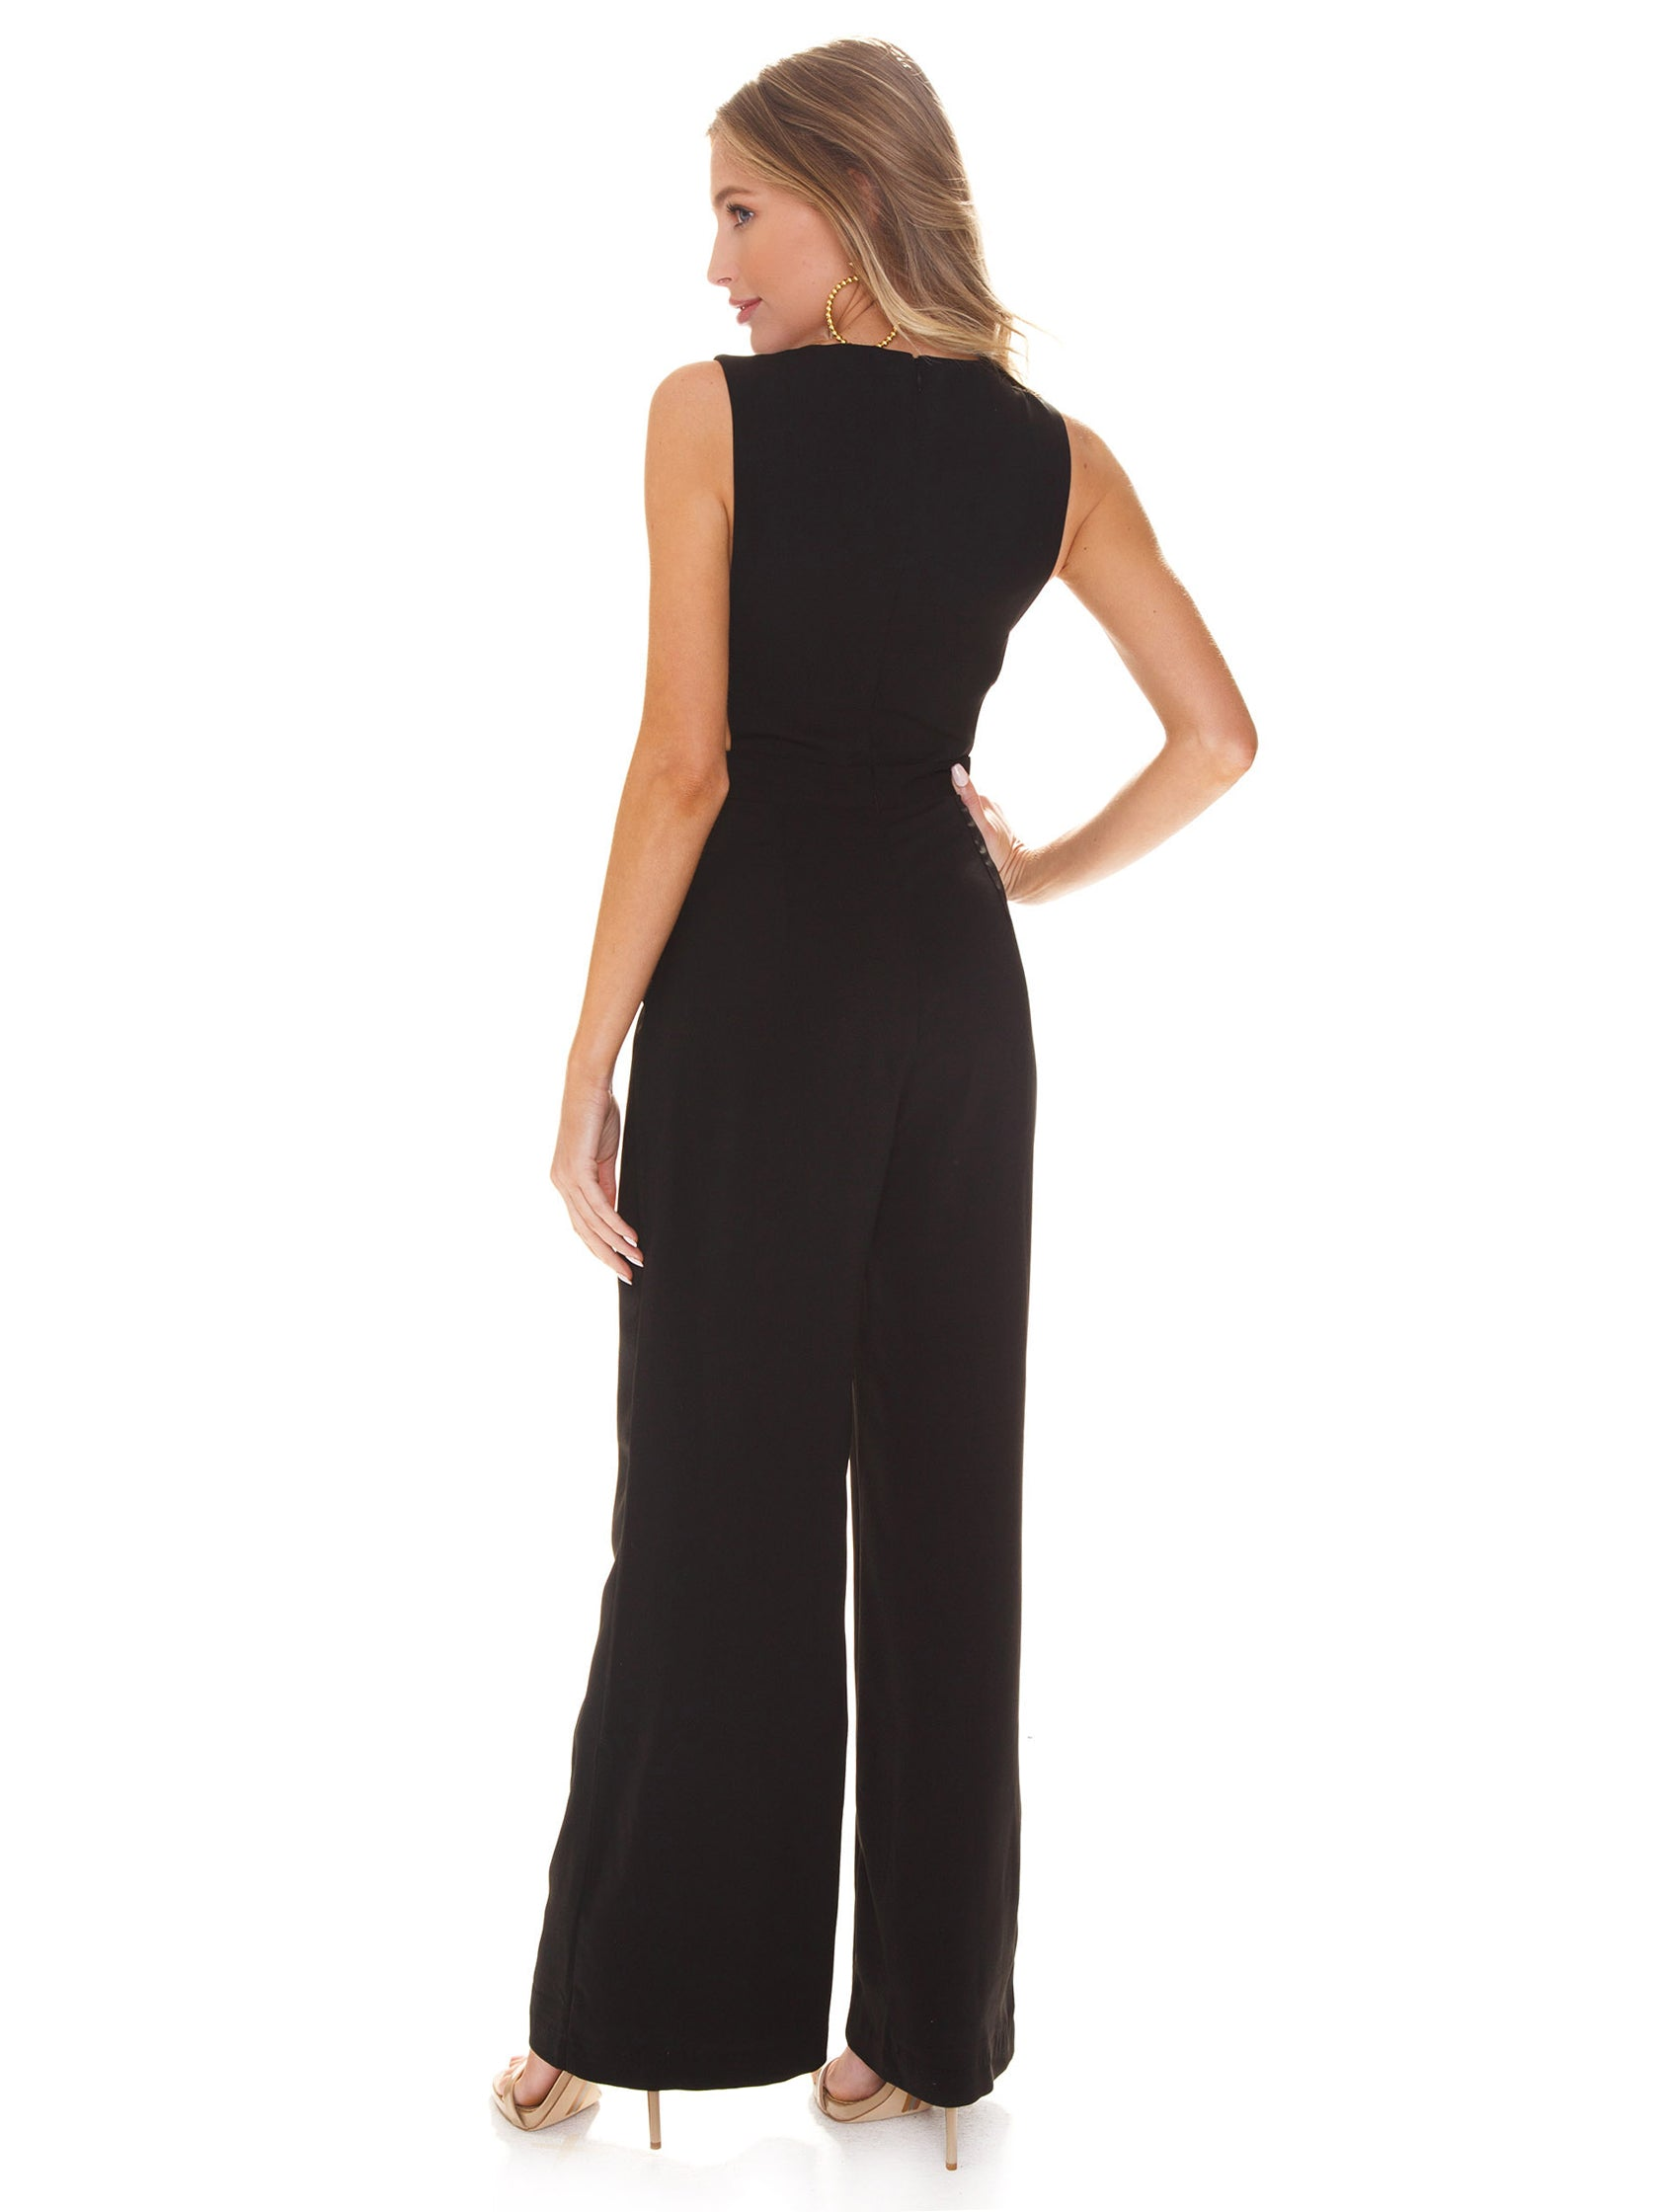 Women wearing a jumpsuit rental from WAYF called Wayland Banded Jumpsuit